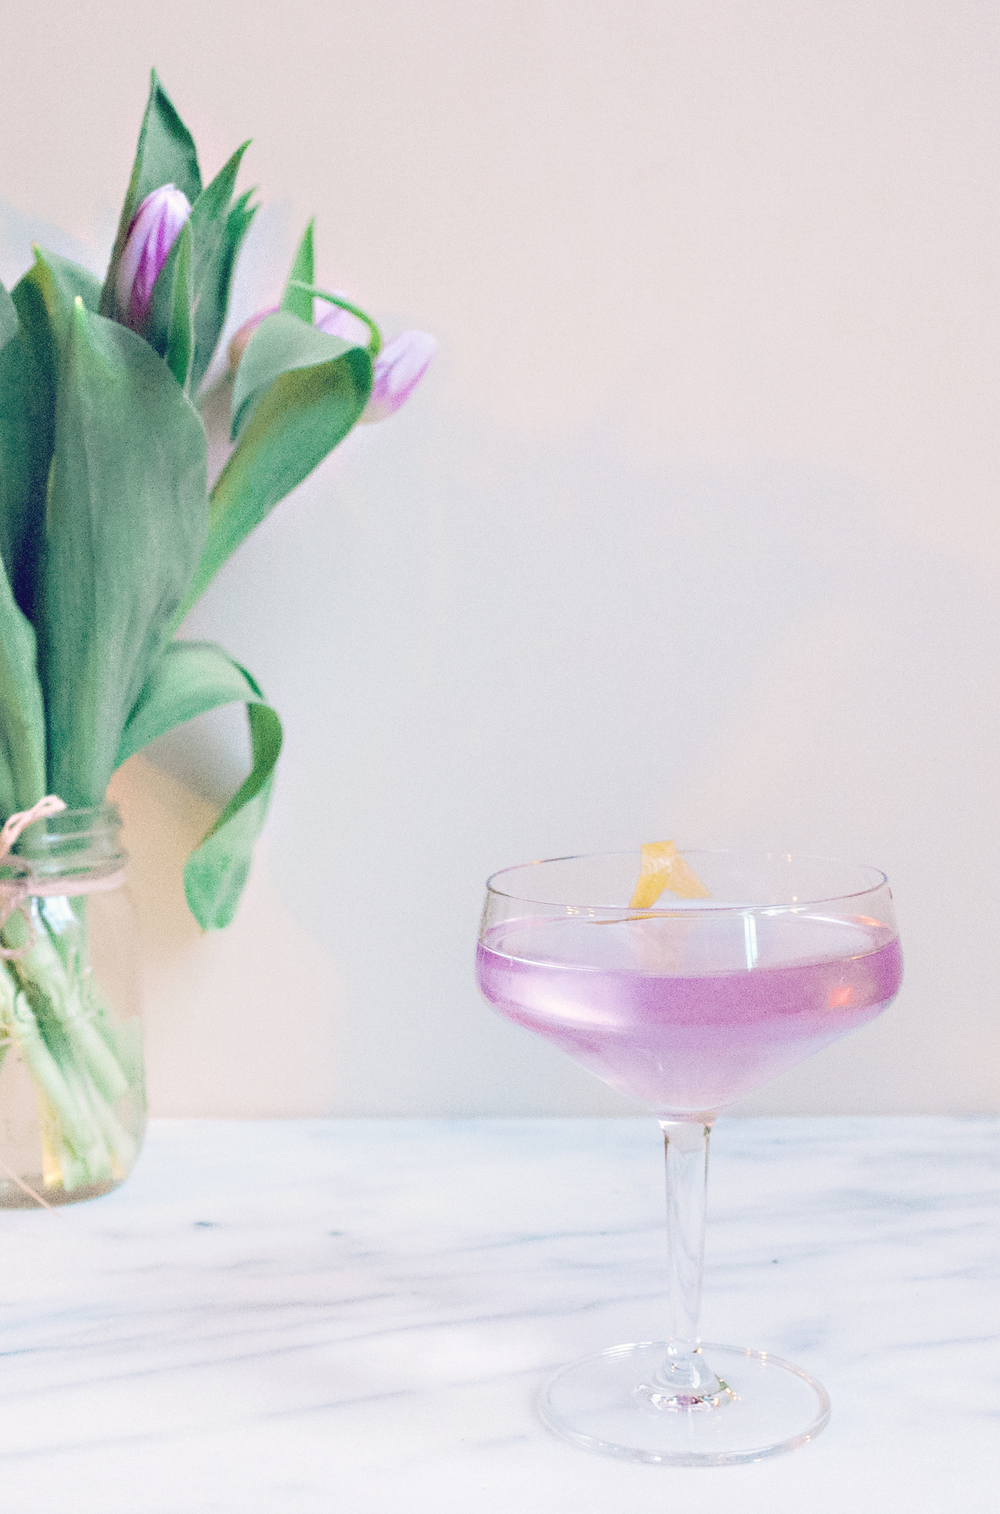 Summerfield Delight | Flirting with Spring Gin Cocktail